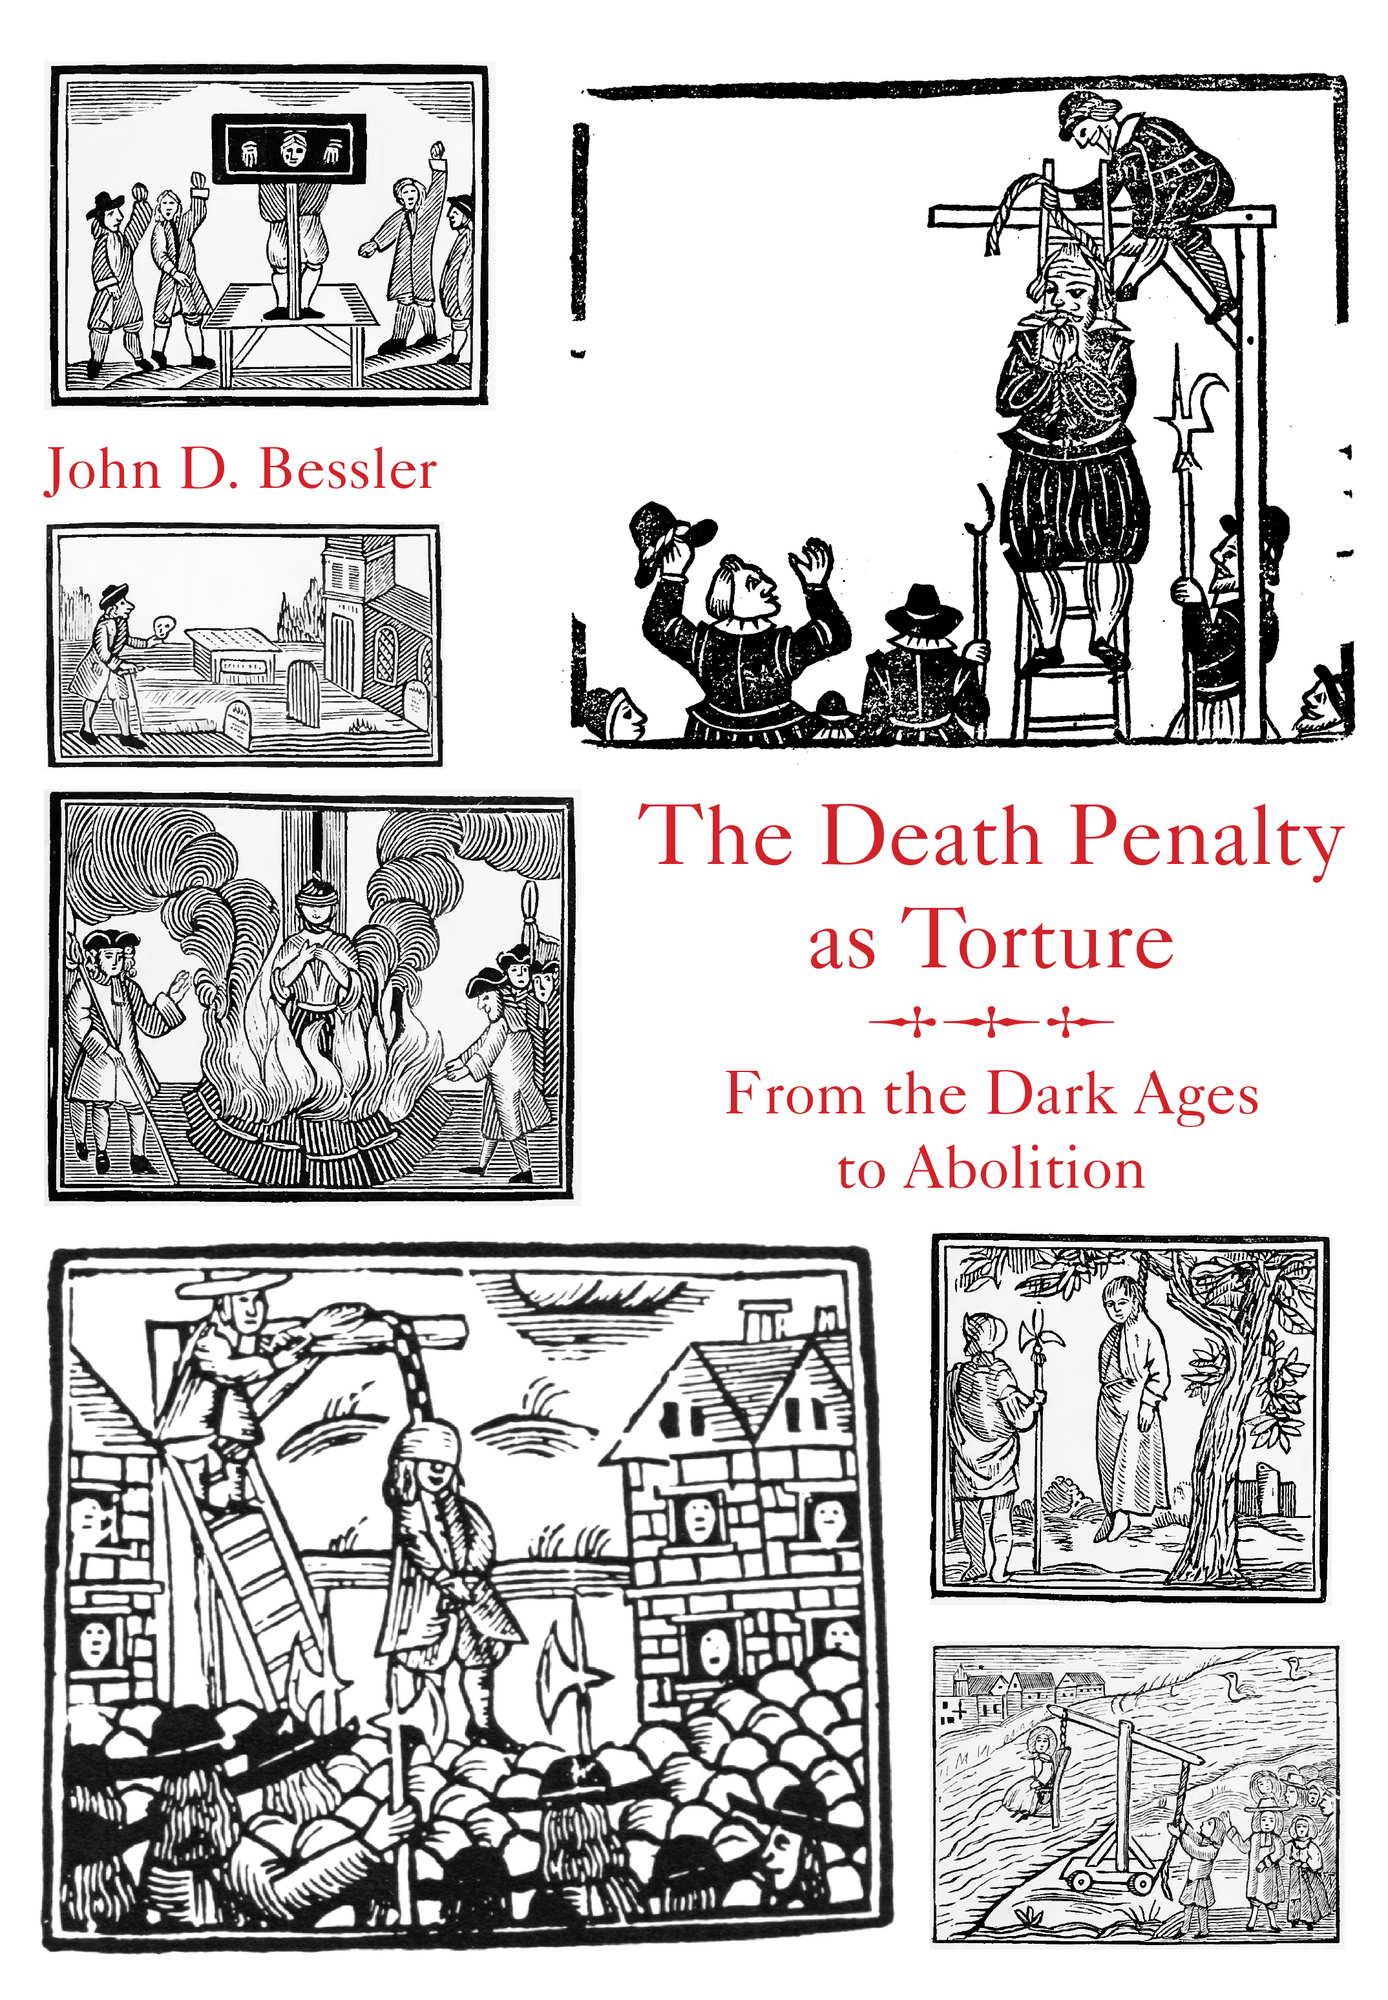 essay arguments against death penalty View this essay on argument against the death penalty the death penalty is a form of punishment used to punish offenders for capital crimes or capital offenses.